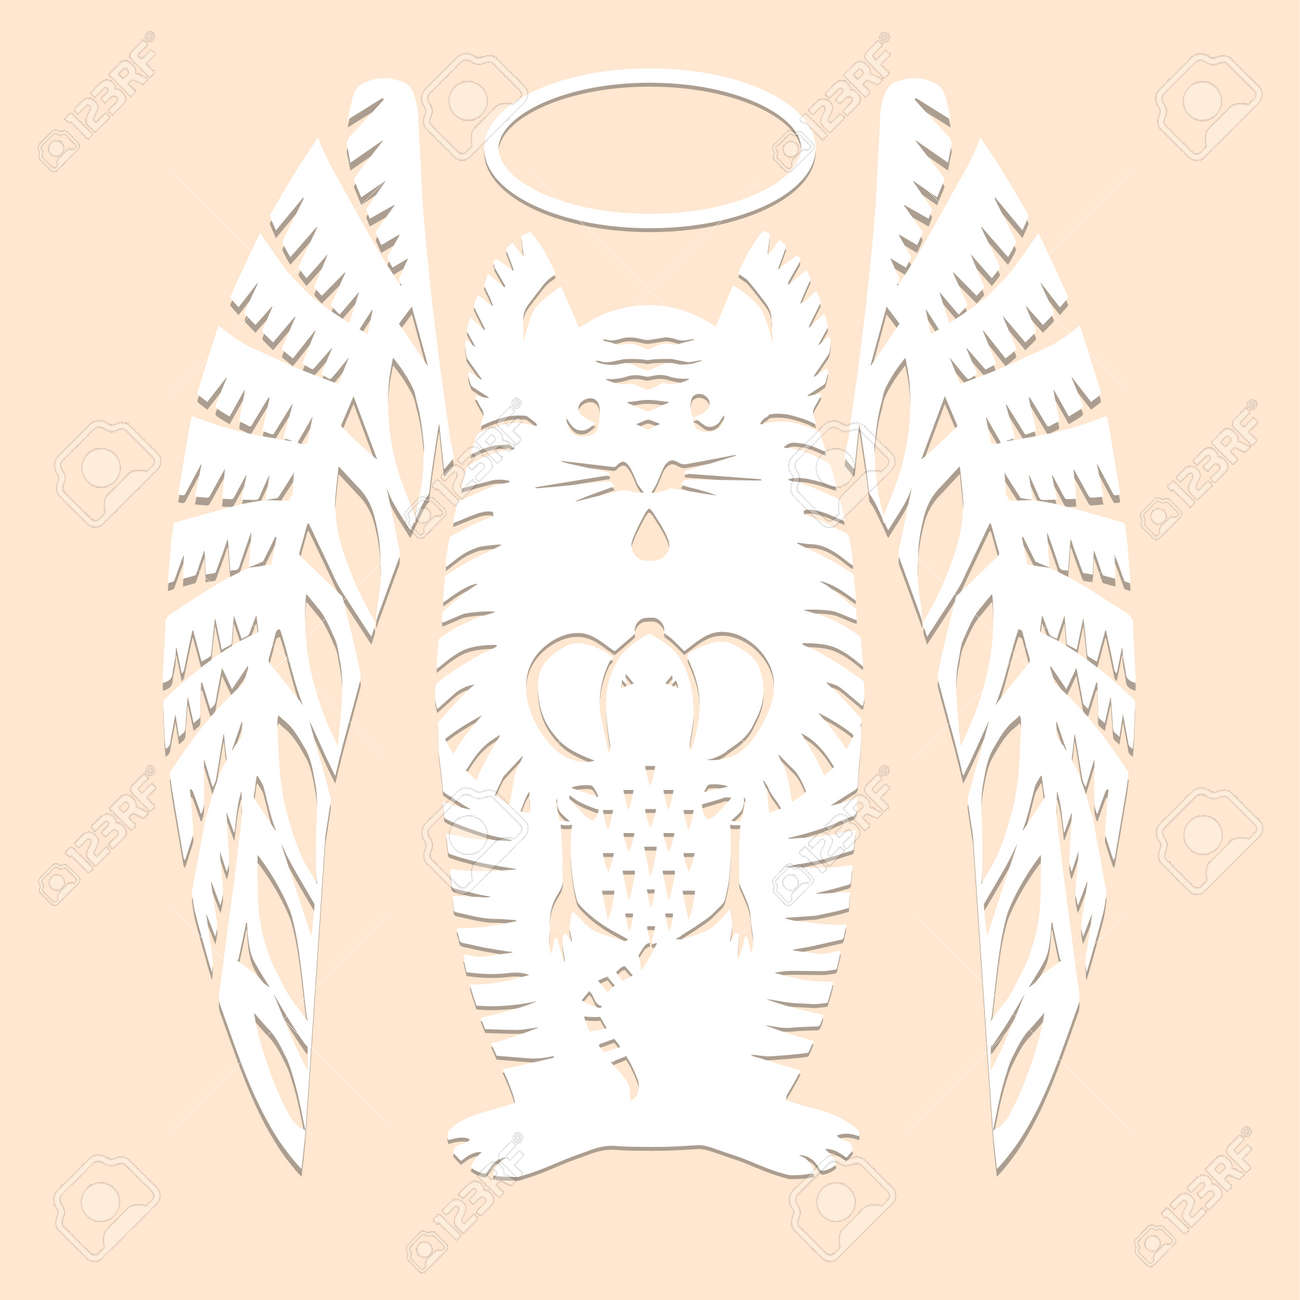 Cat angel with mouse Paper cut decorative silhouette animal in white color isolated on beige background Traditional Belarusian, Polish paper clippings make with scissors. Hand made. Vector - 164341526